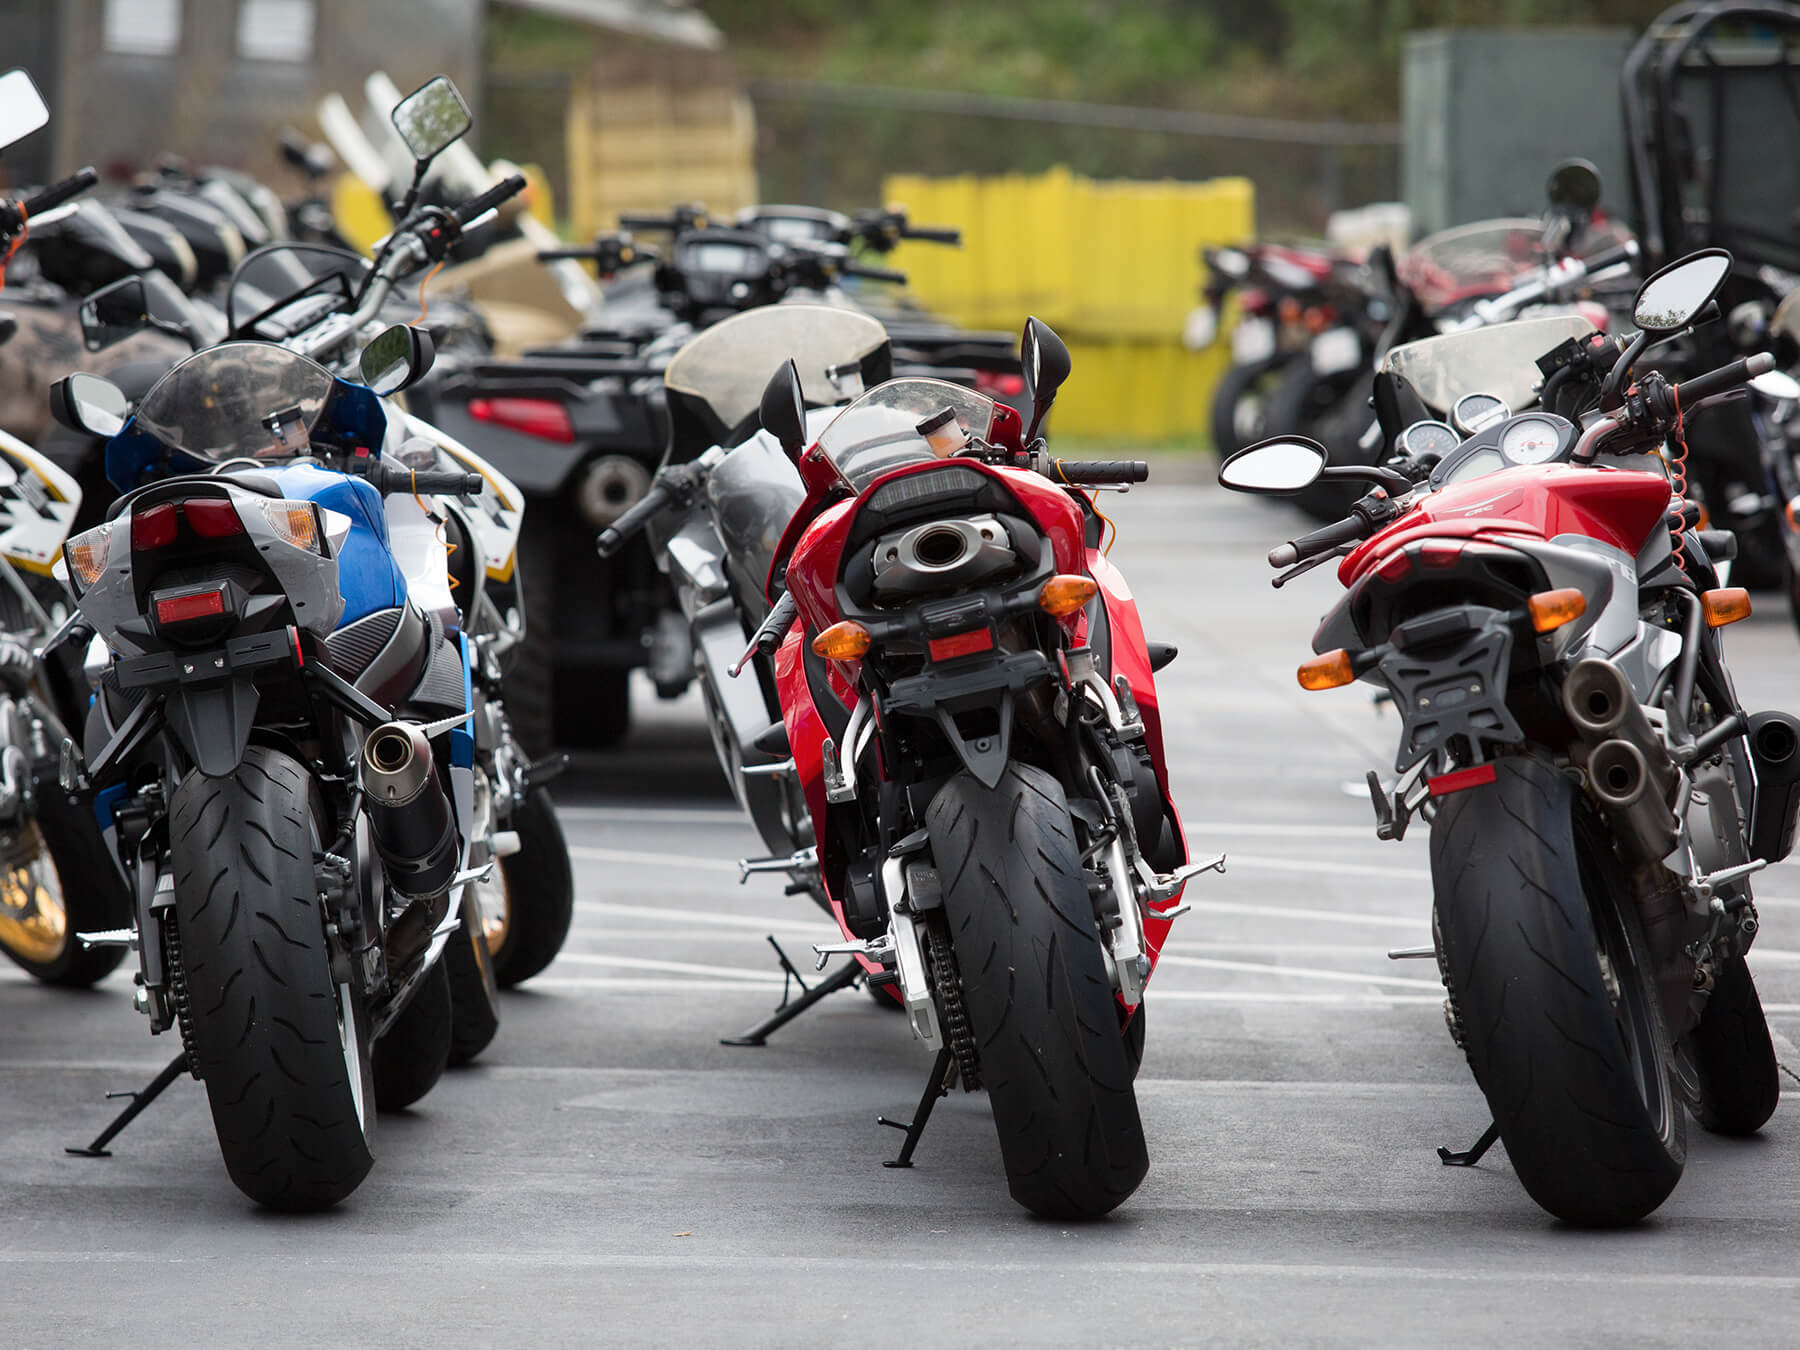 Check Out The Best Bike From TVS!